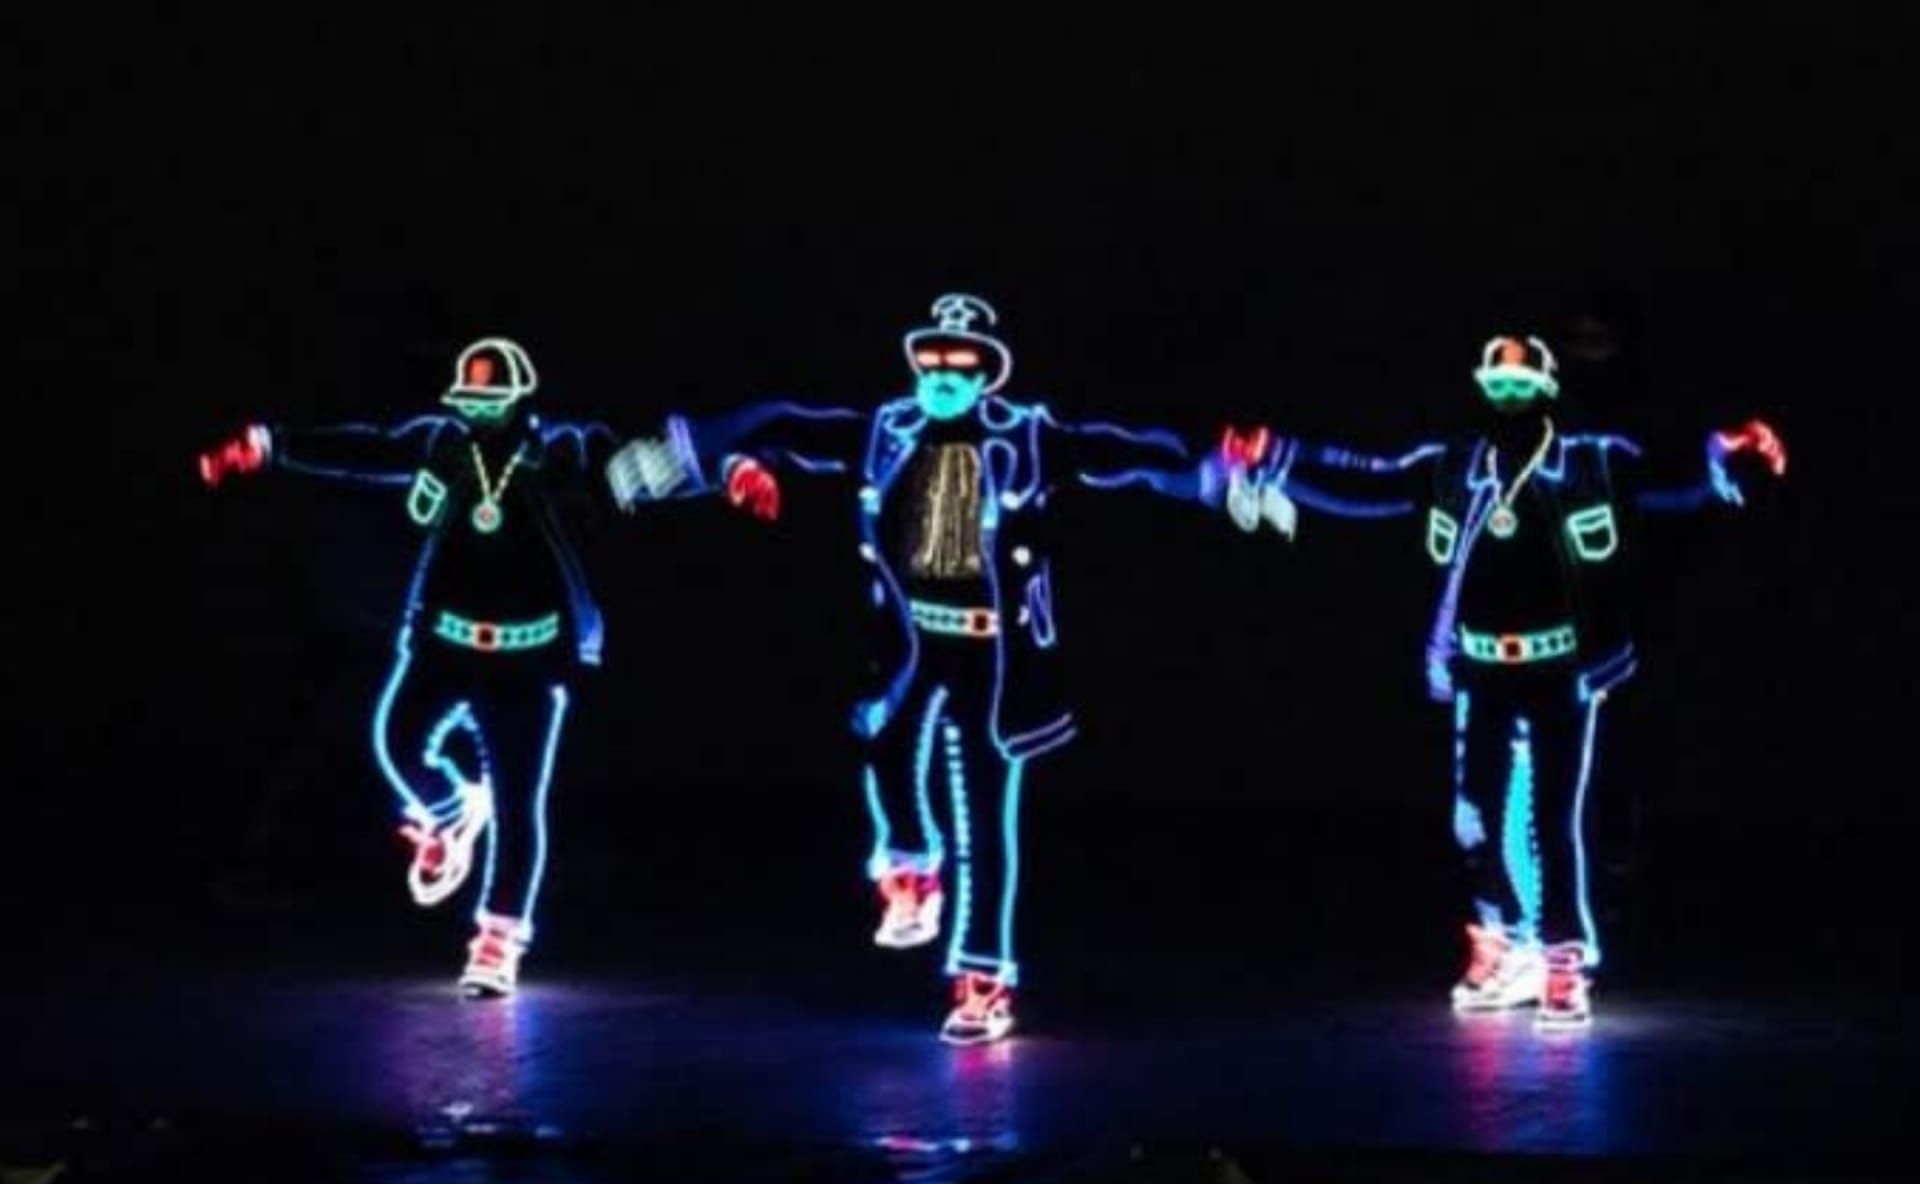 O grupo Light Balance encerrou o leque de performances da noite